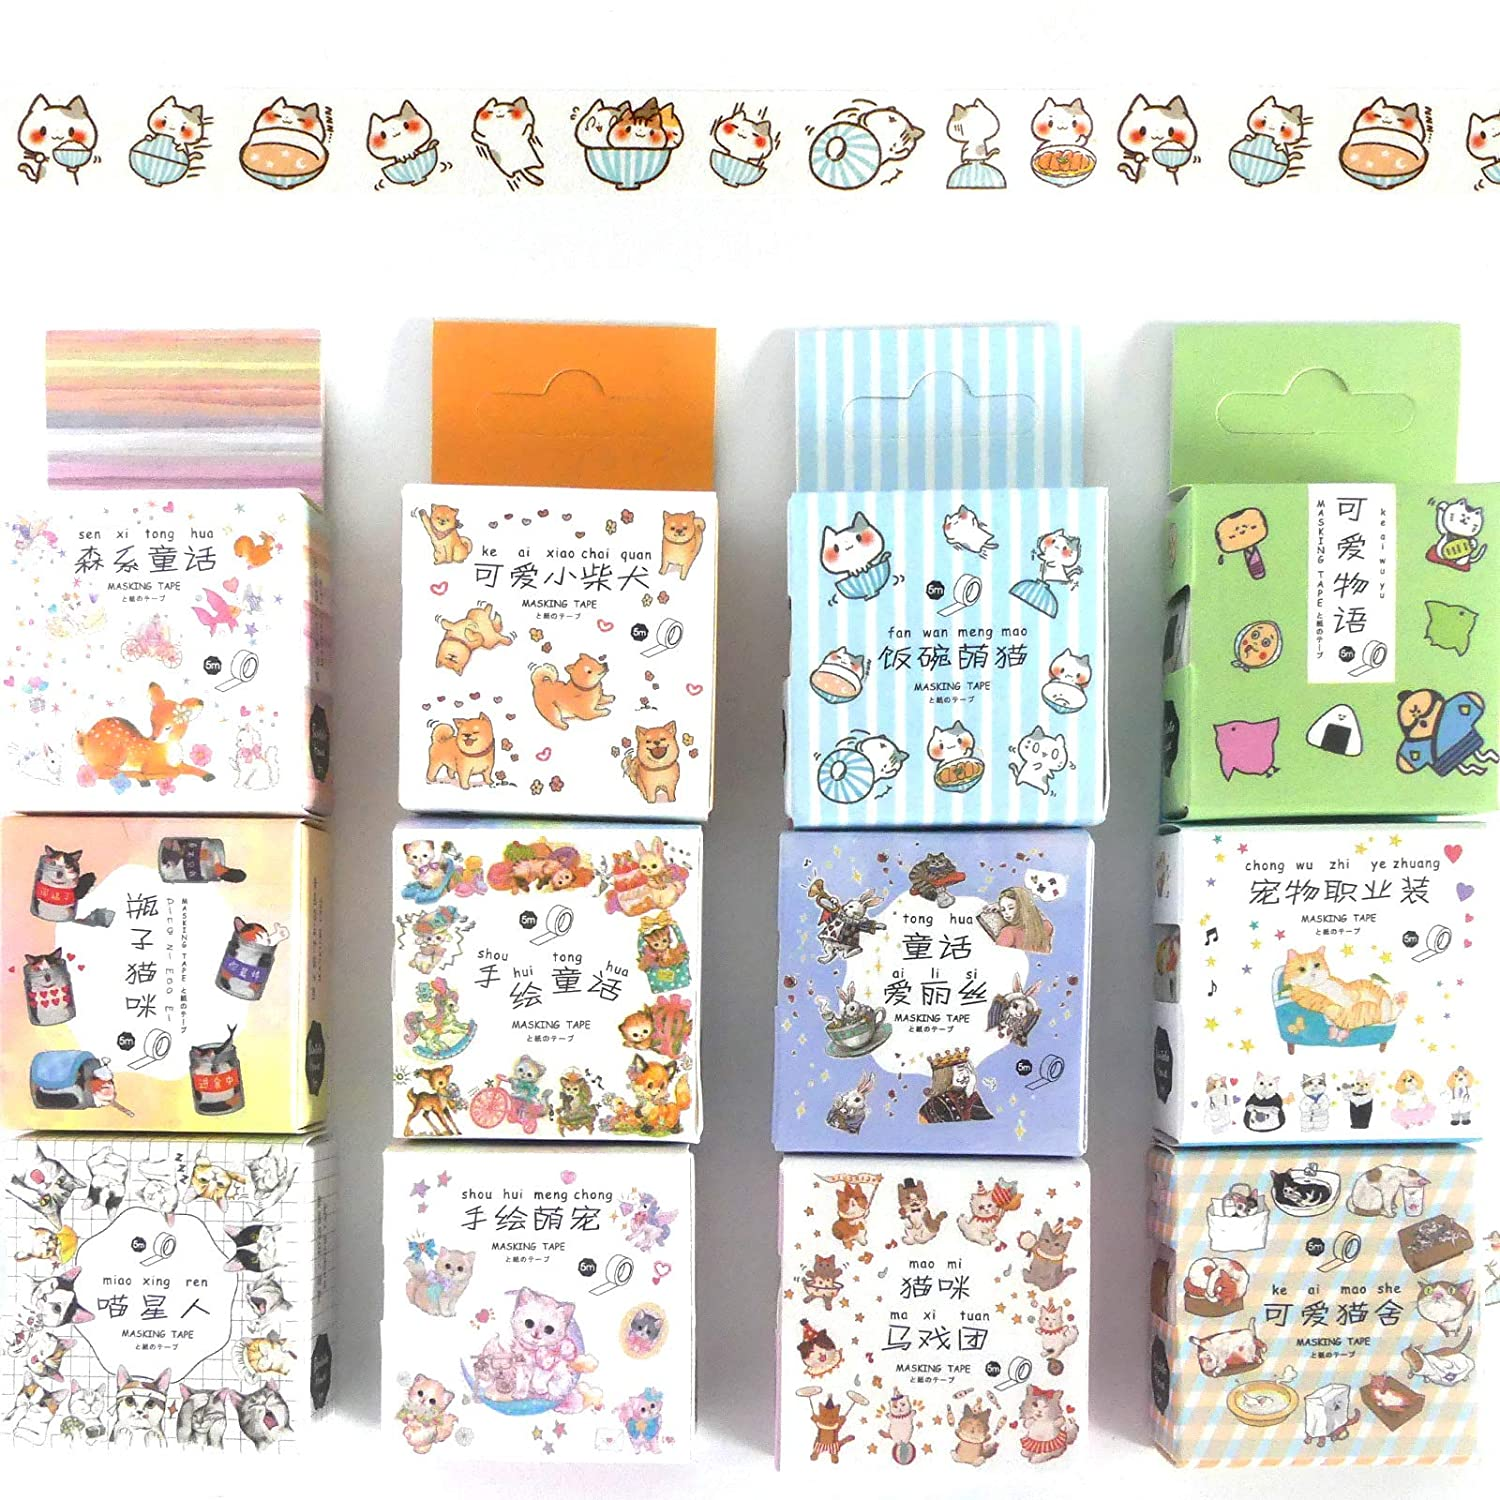 Sprinkles Washi Cloud Washi Planner Tape Bullet Journal Accessories Pretty Stationery Set of 3 Tape By Tape Unicorn Dream Washi Tape